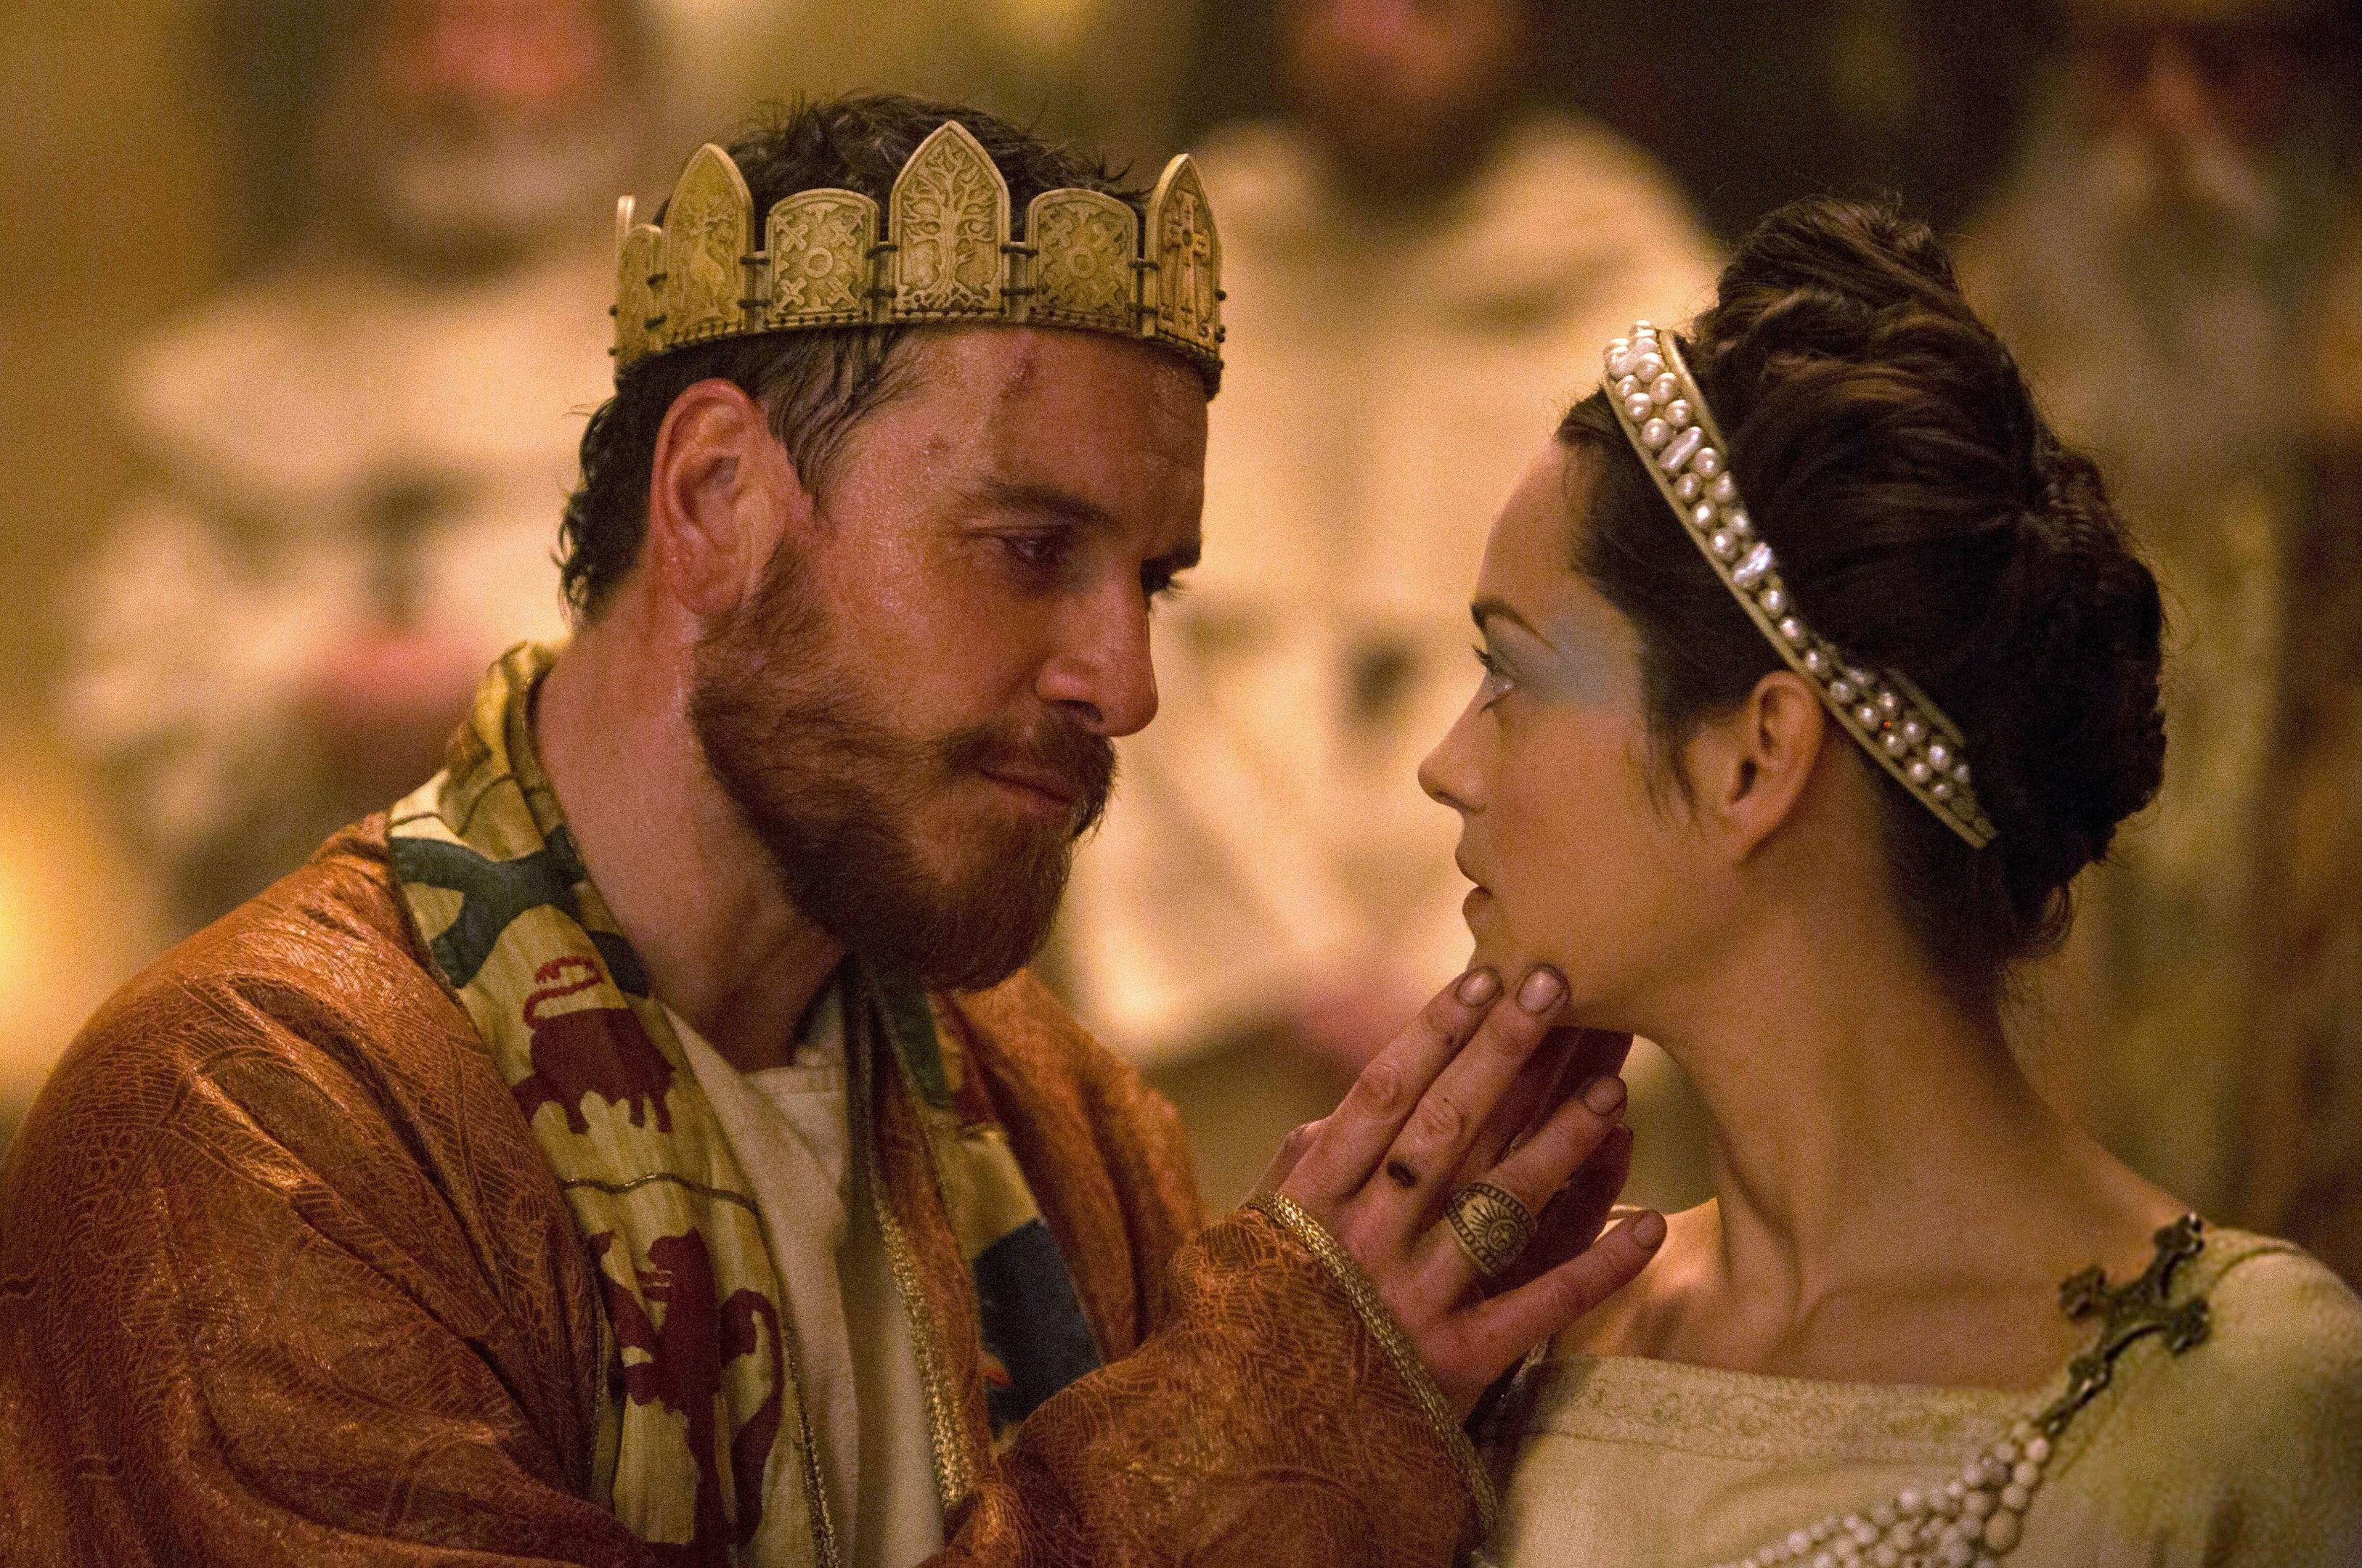 Hollywood A-lister Michael Fassbender starred in the 2015 cinematic adaptation of Macbeth, which has strong links with Perthshire - and increasingly the story has links with China